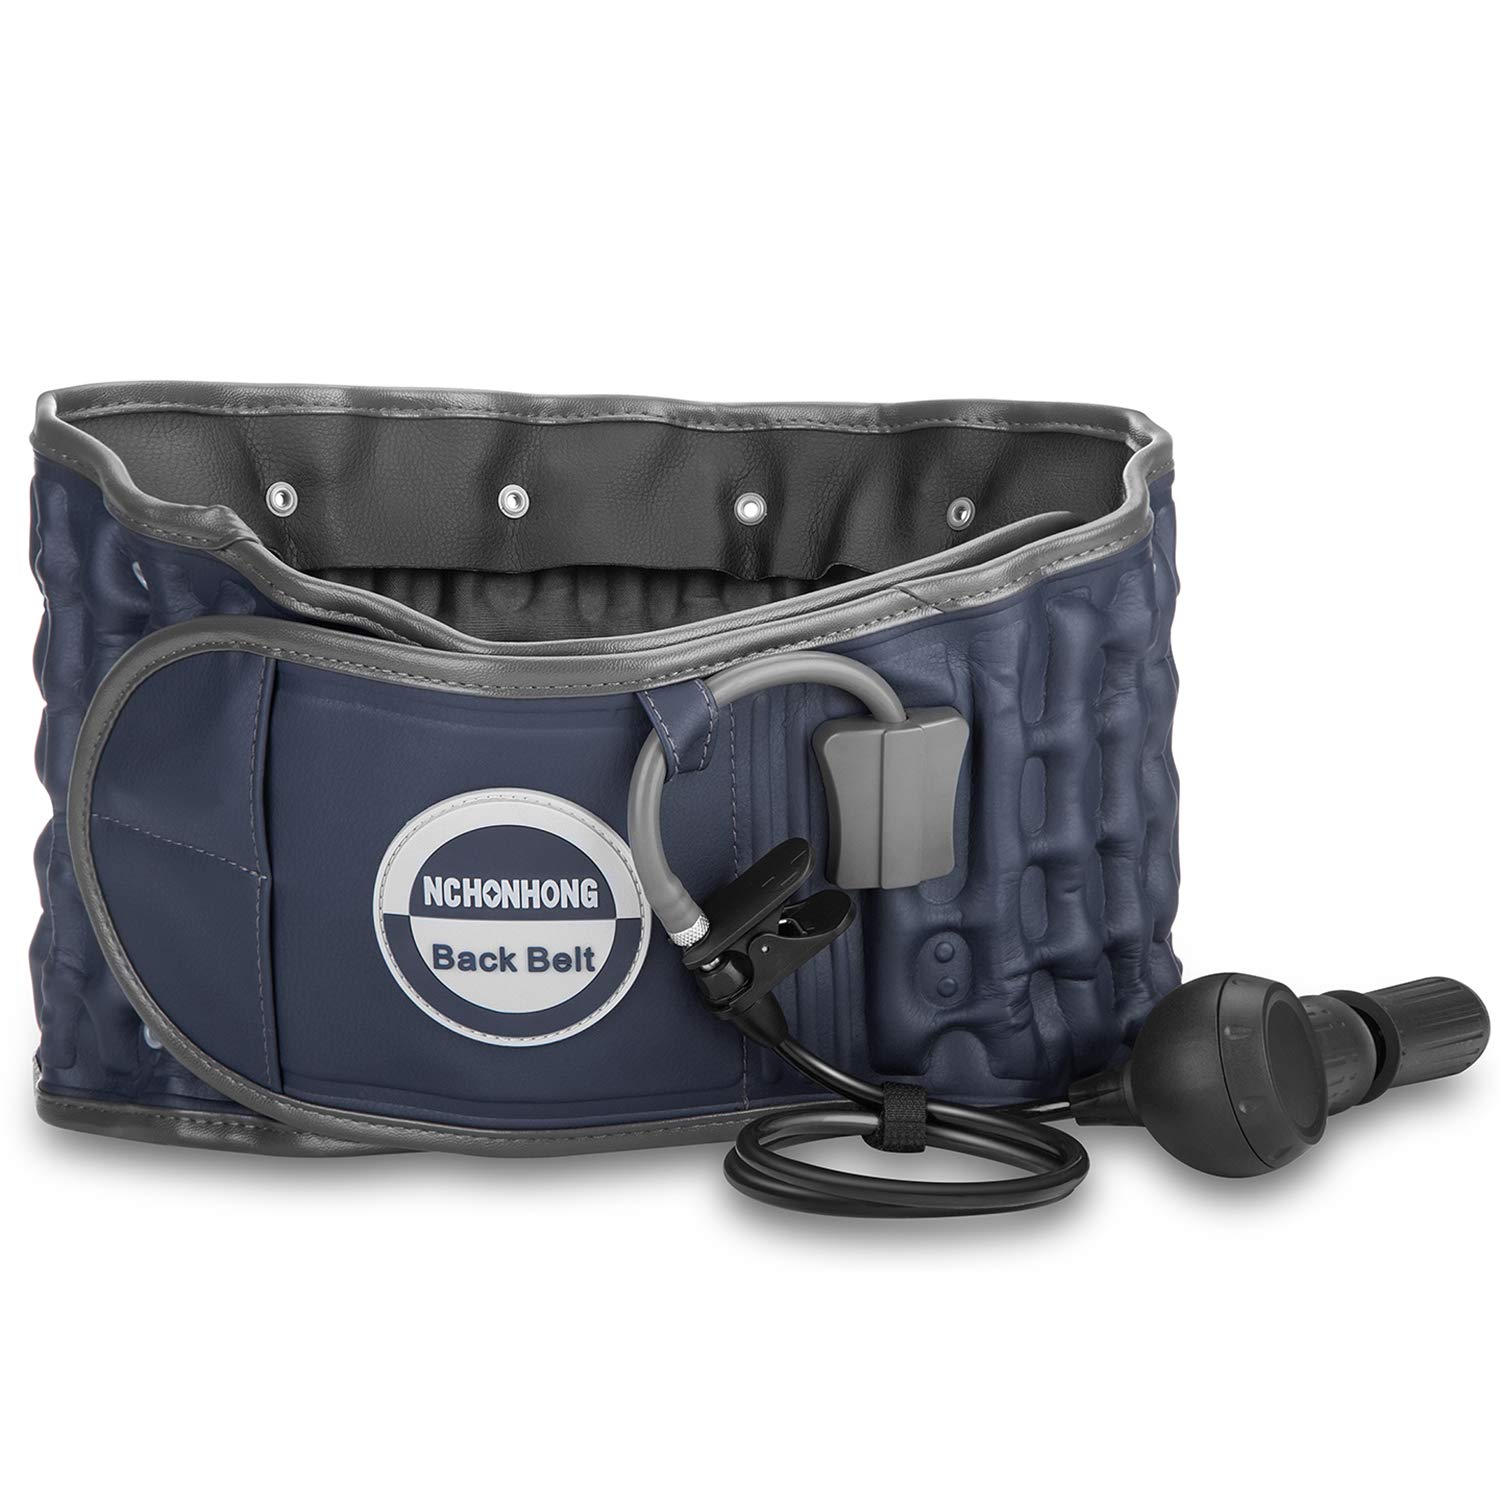 Decompression Back Belt by GINEKOO - Spinal Air Traction Belt for Lumbar Support and Lower Back Pain, Back Support & Lumbar Traction Belt, Navy Blue(29-49 inch Waists) by GINEKOO